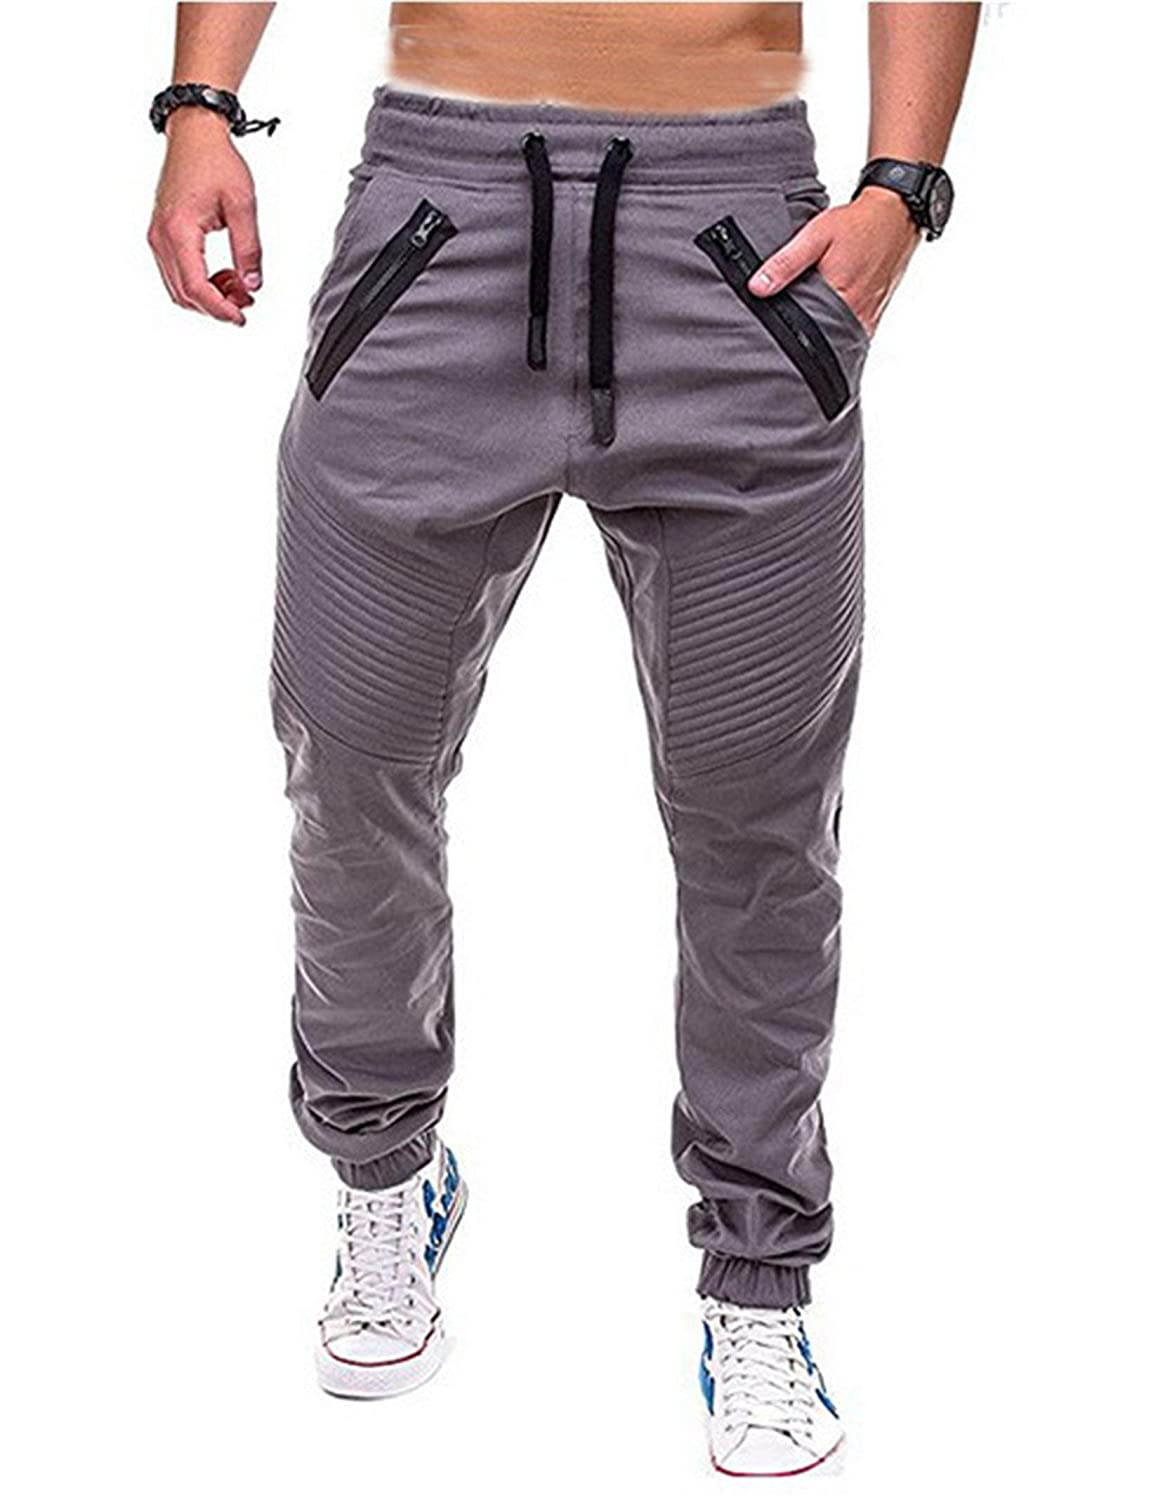 Men's Joggers Super Special SALE 2021 autumn and winter new held Athletic Pants Workout Tapered Running Sweatpants